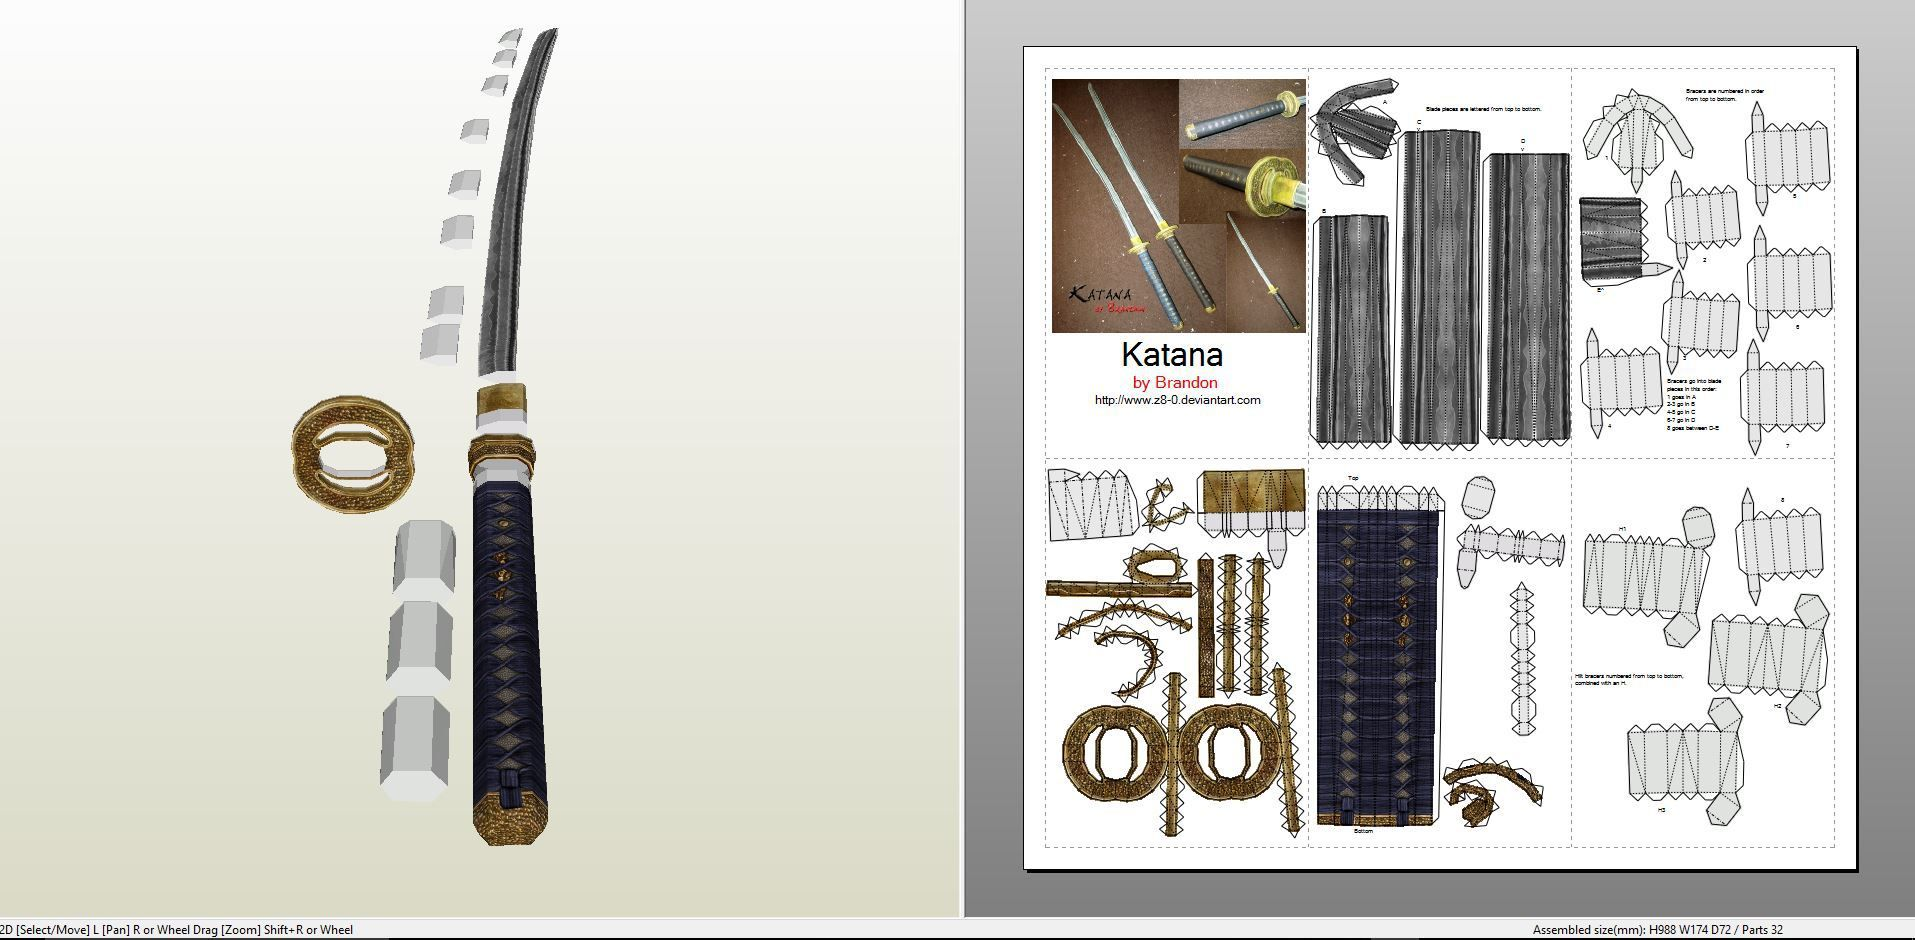 Papercraft pdo file template for weapons katana origami papercraft pdo file template for weapons katana pronofoot35fo Gallery